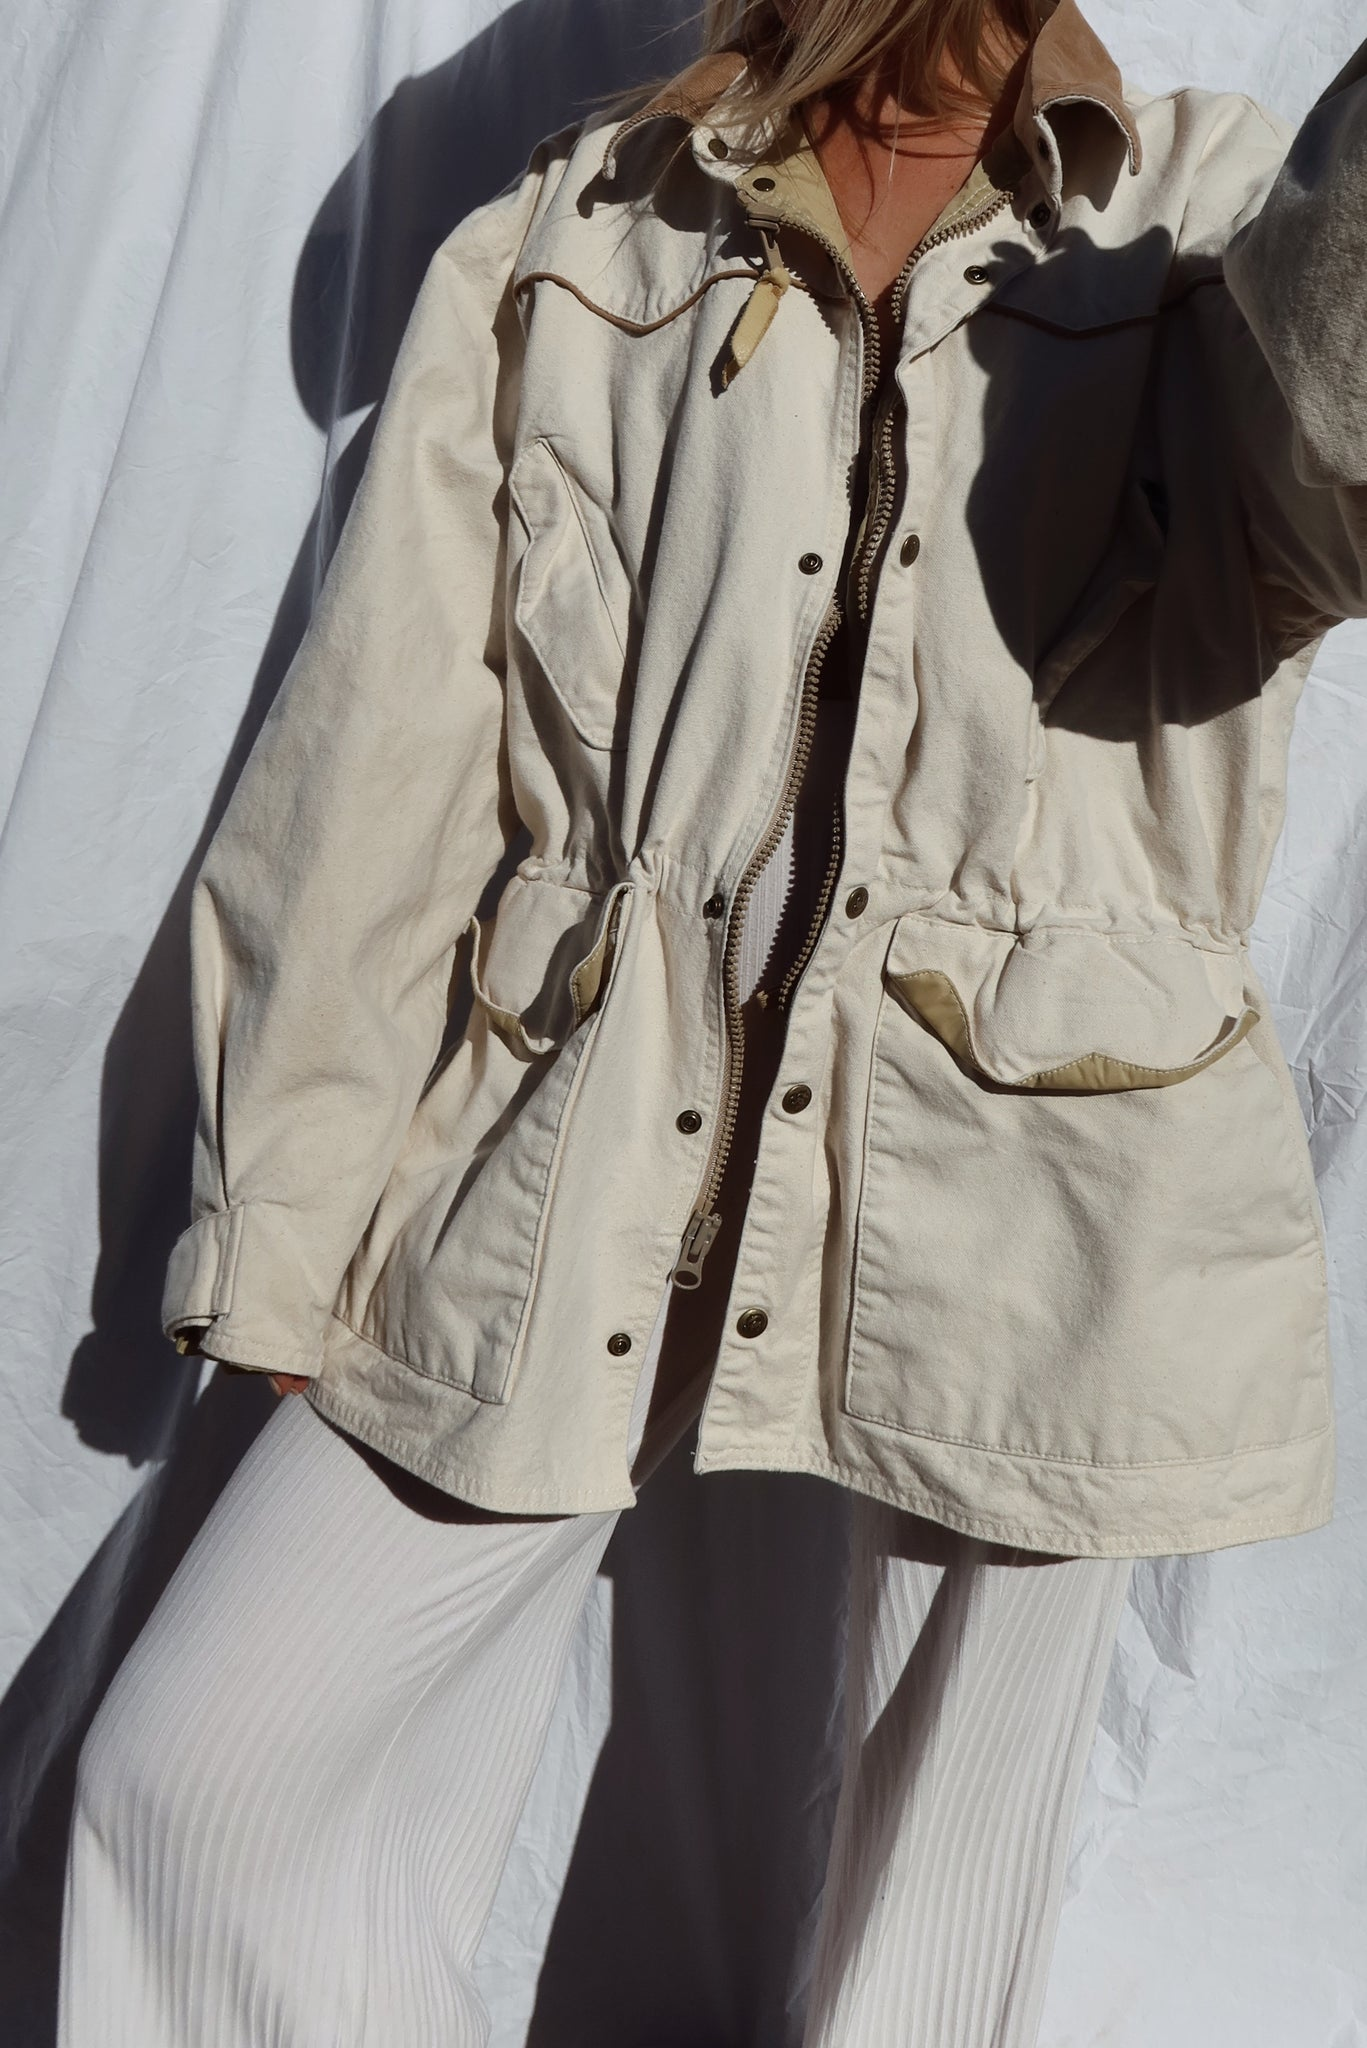 Cotton Cream Coat (L)